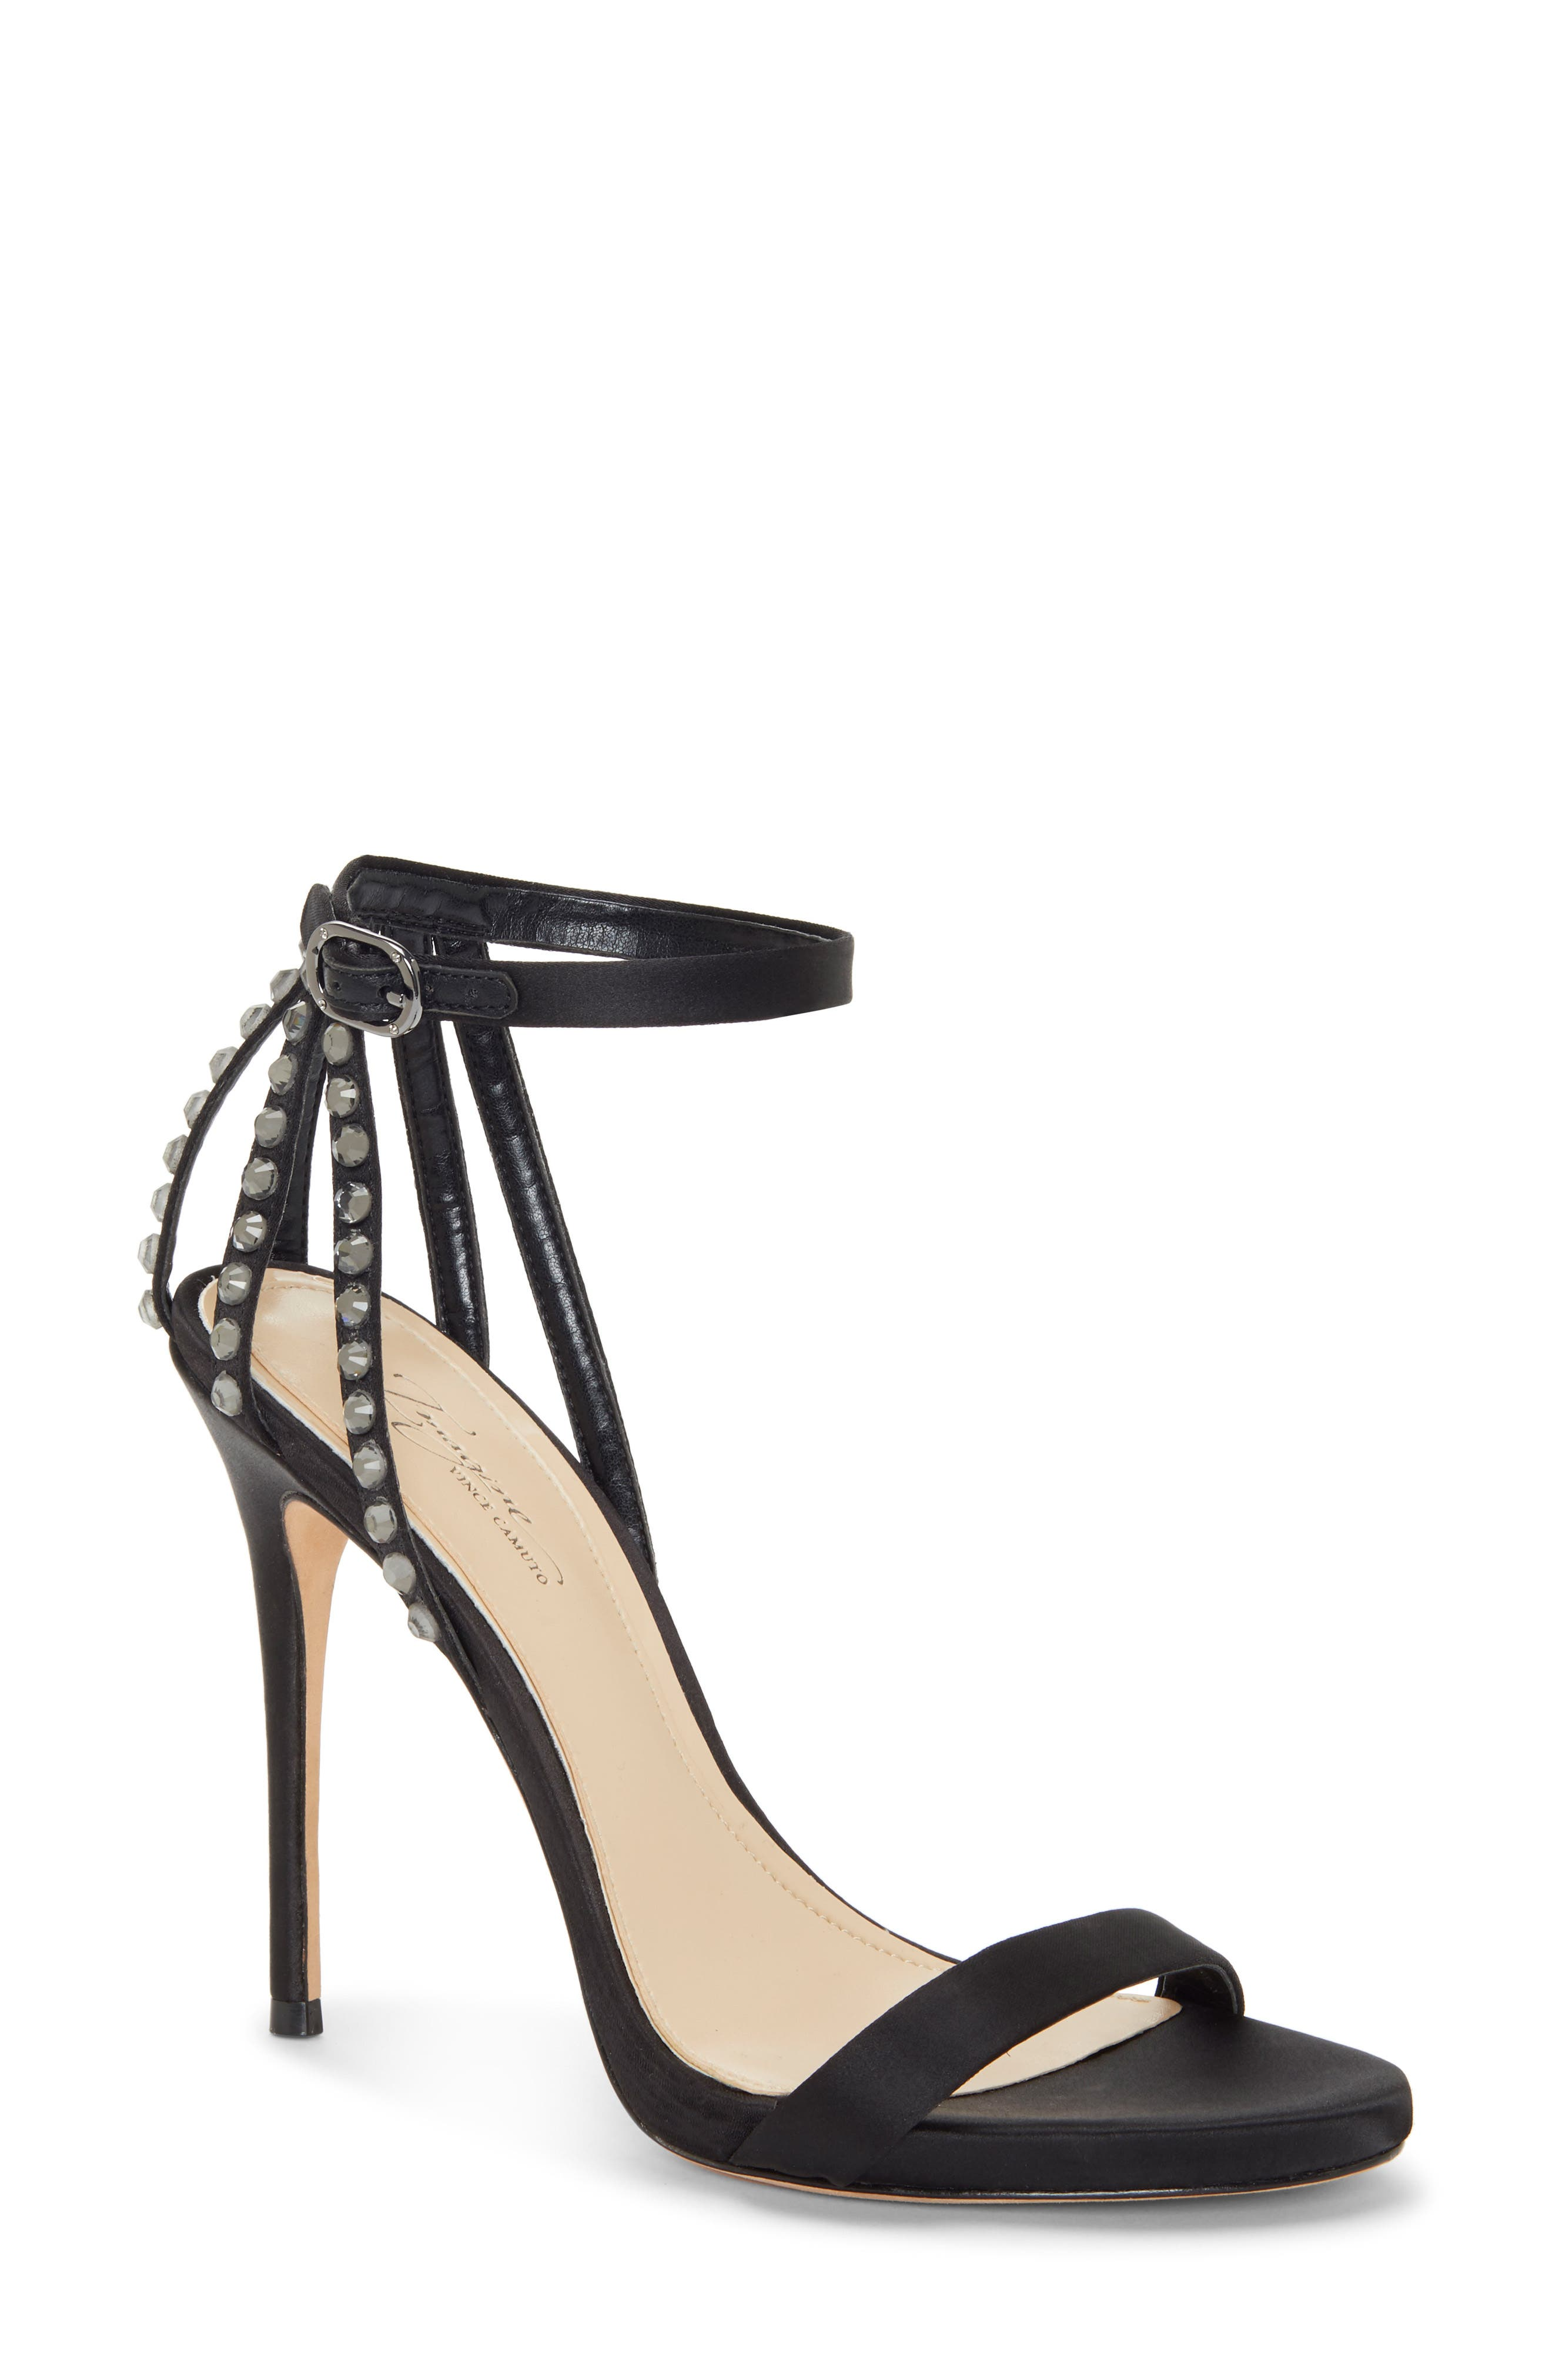 IMAGINE BY VINCE CAMUTO, Daphee Crystal Embellished Sandal, Main thumbnail 1, color, BLACK SATIN